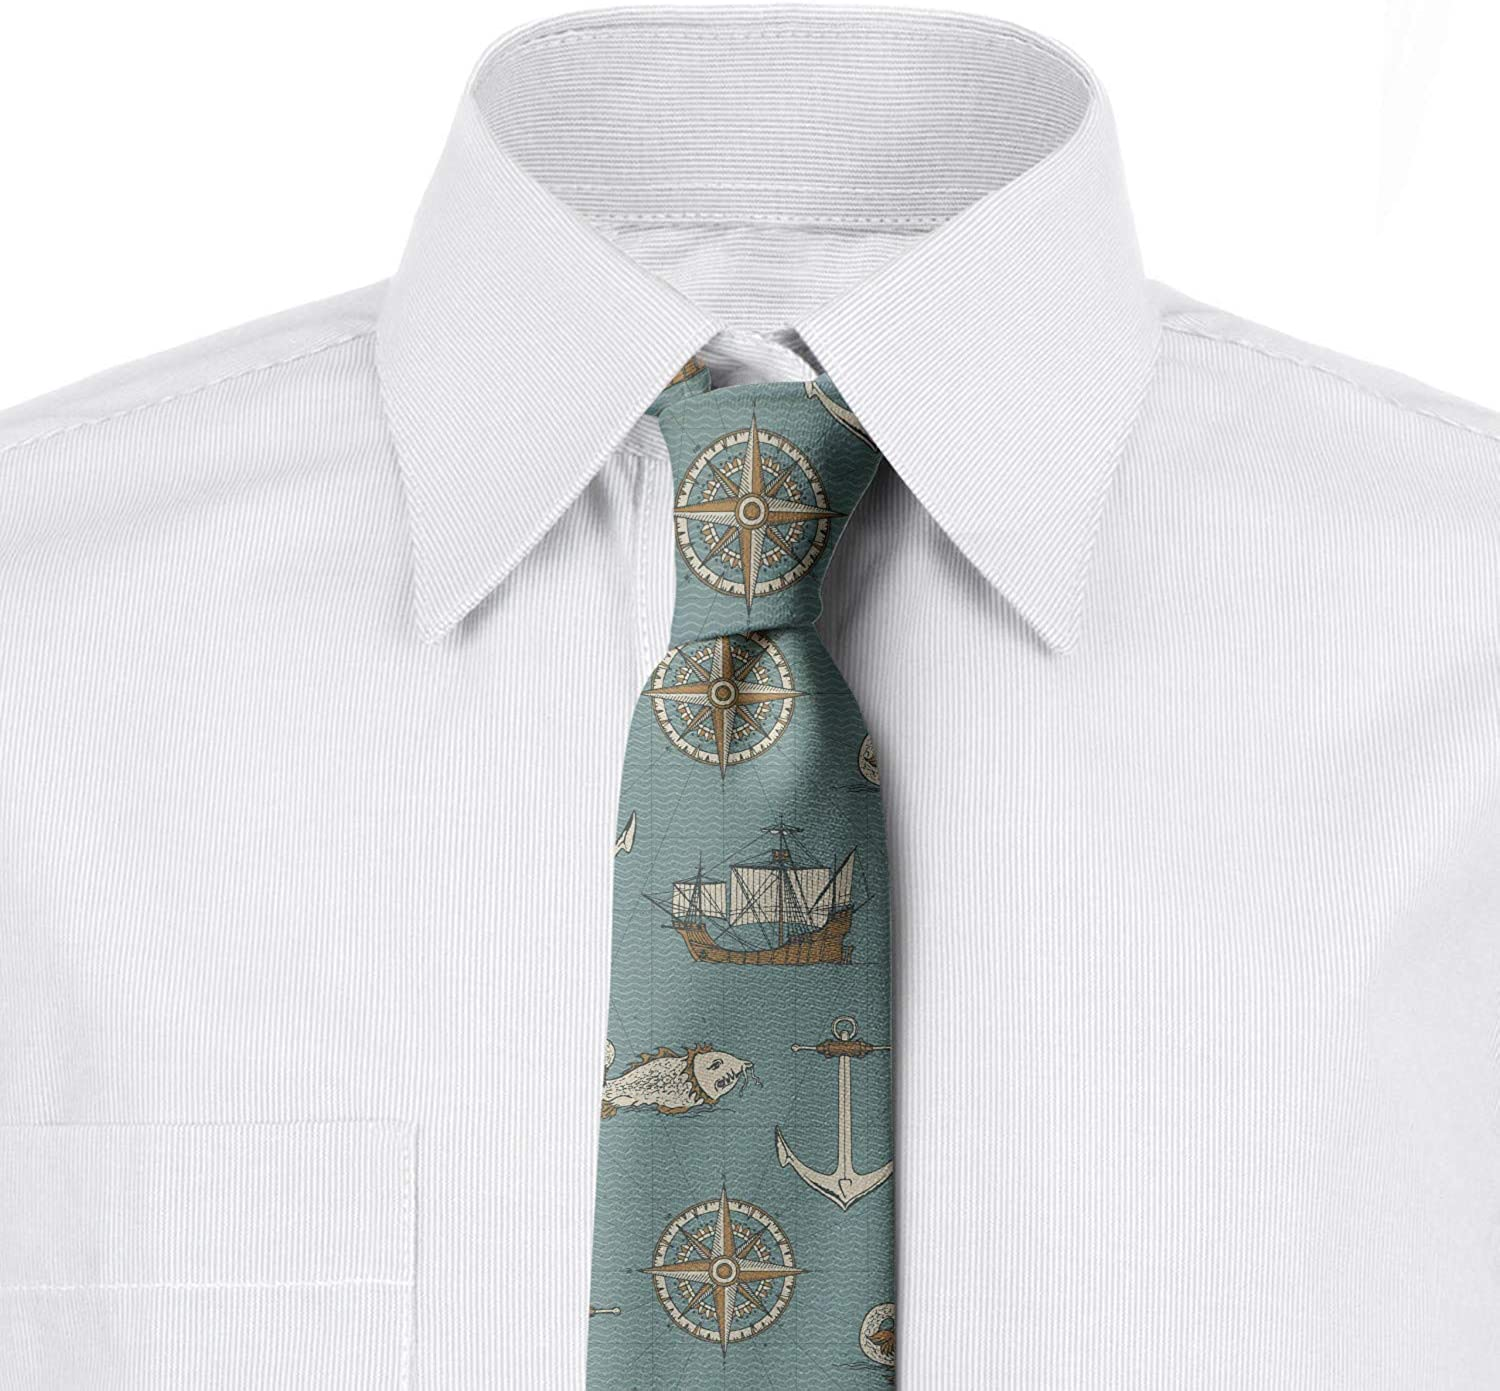 3.7 Retro Nautical Elements Art Ambesonne Mens Tie Peal Teal Ivory Camel